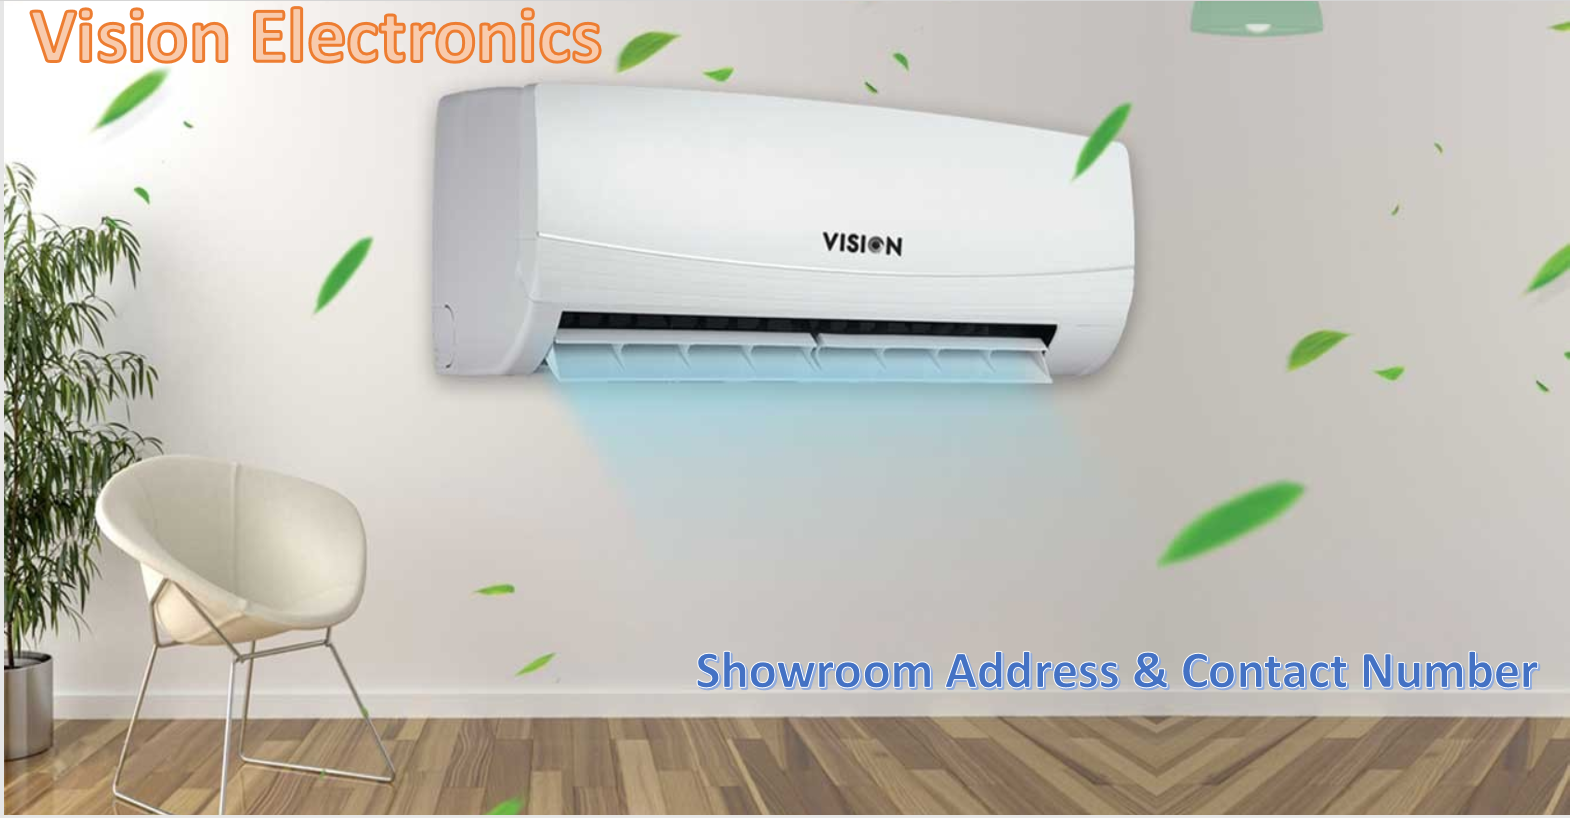 Vision showroom address & contact Number